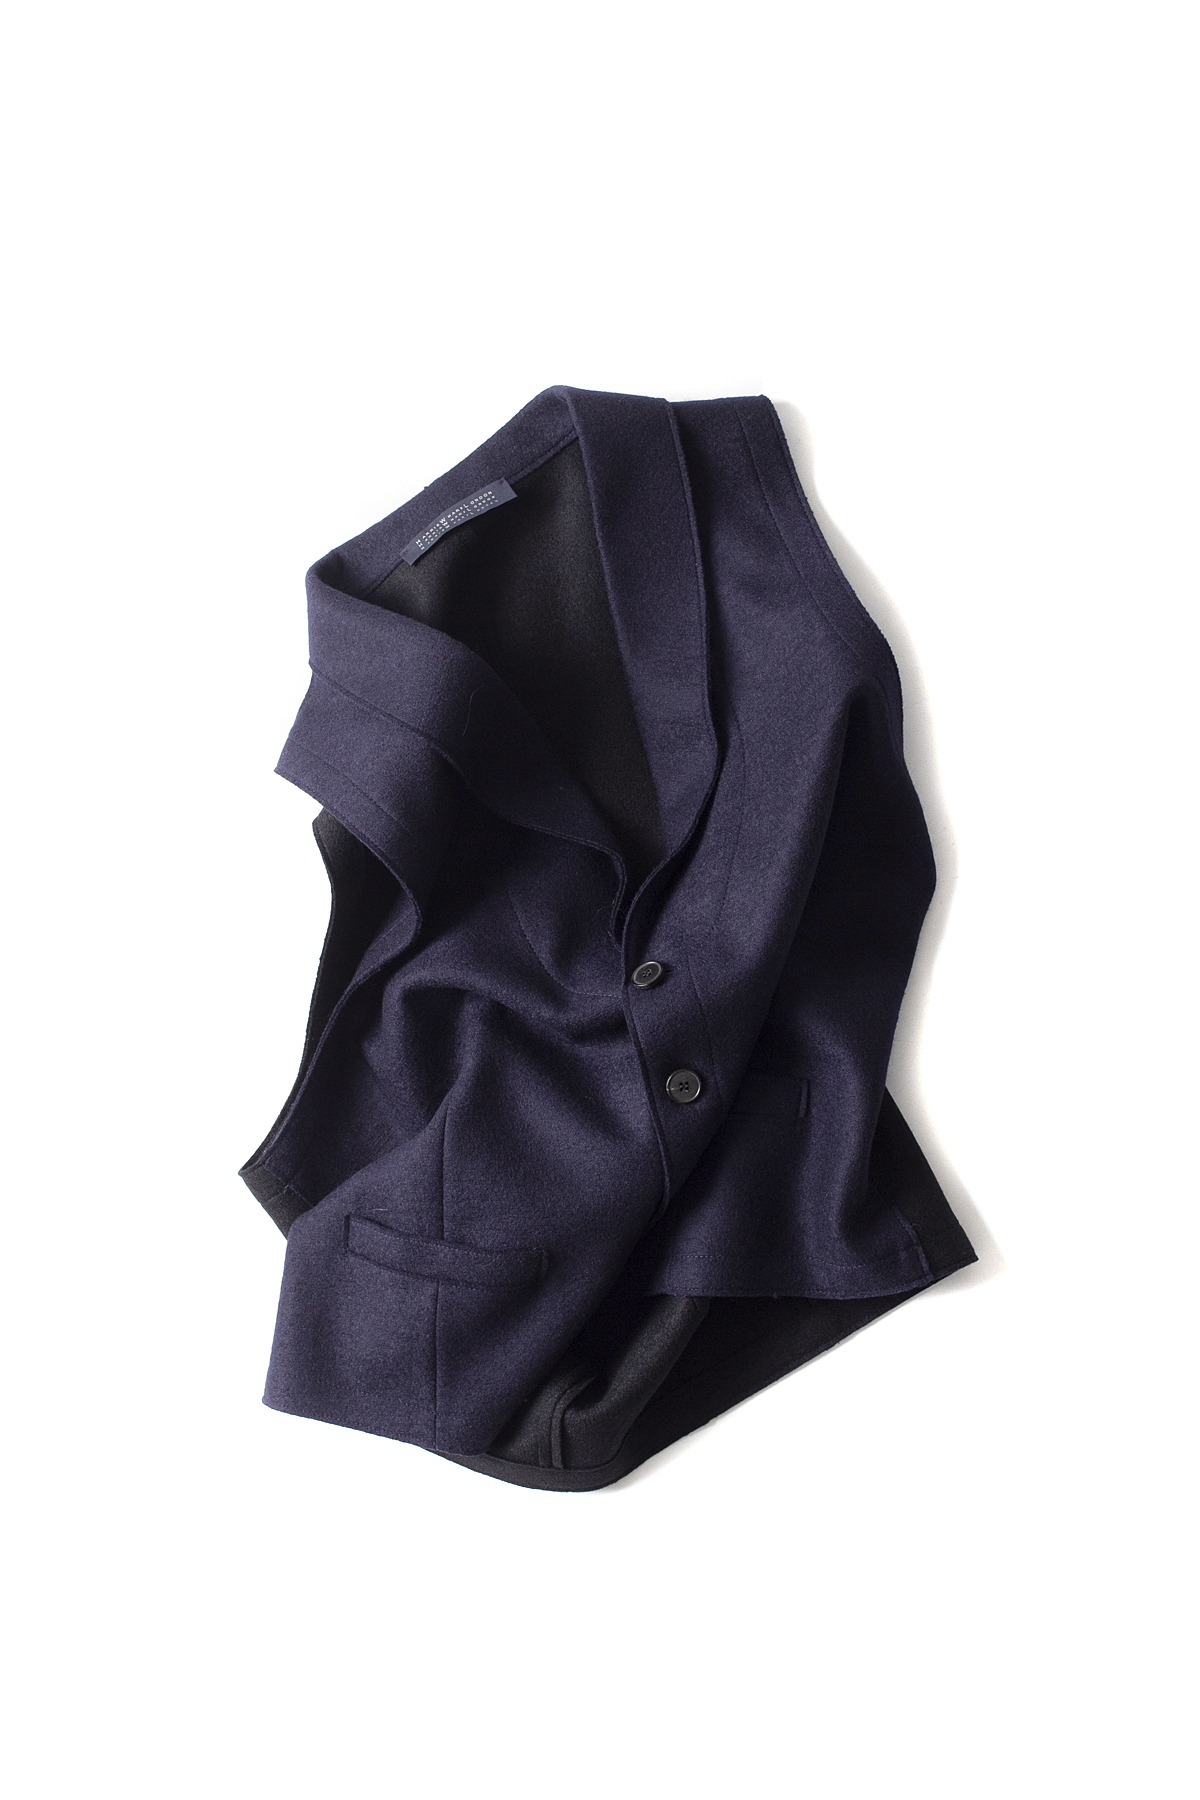 Harris Wharf London : Blcolour Light Waist Coat (Navy)